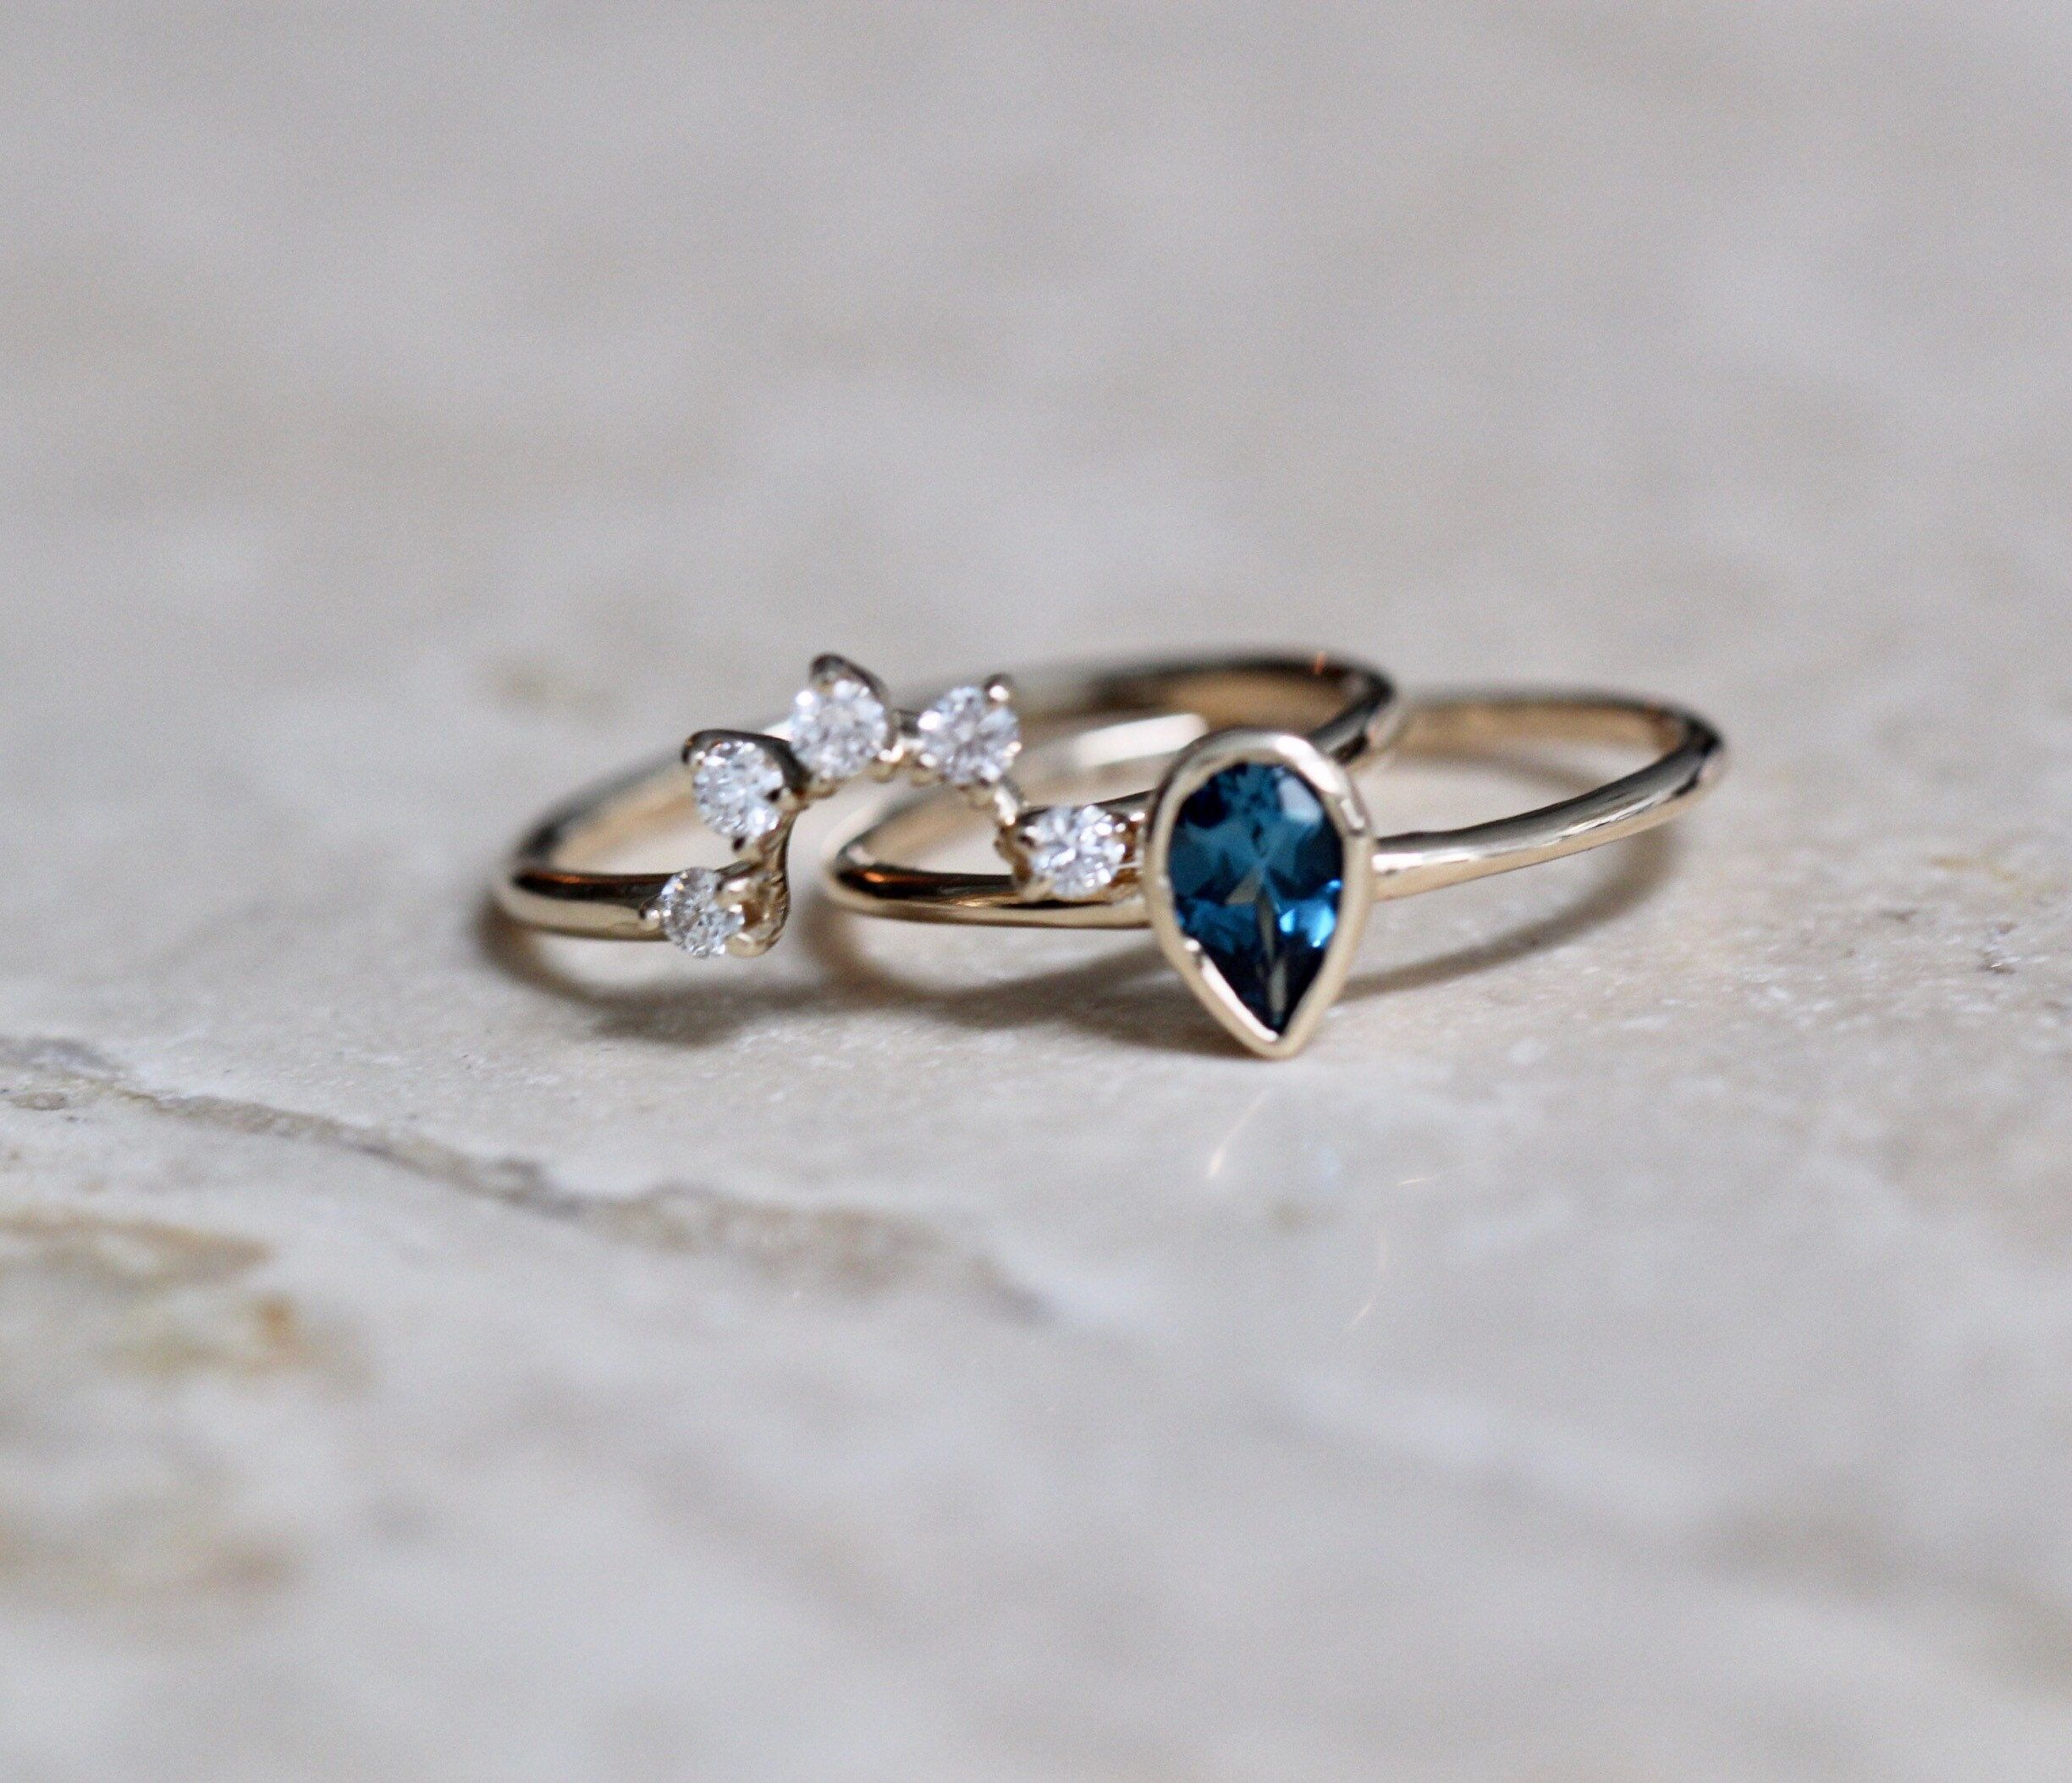 This wedding set features a gorgeous pear-shaped London Blue Topaz which nestles perfectly with a curved band crowned with diamonds. Perfect for the off-beat bride looking for something a little more special! - London Blue Topaz measures 6mm by 4mm - Diamonds each measure 2mm (.15 Ct total), conflict free - Round band measures 1.3mm - Handcrafted out of 14K yellow, rose or white gold - Please convo us directly for different center stone options Processing times - Current processing time is 1 - 3